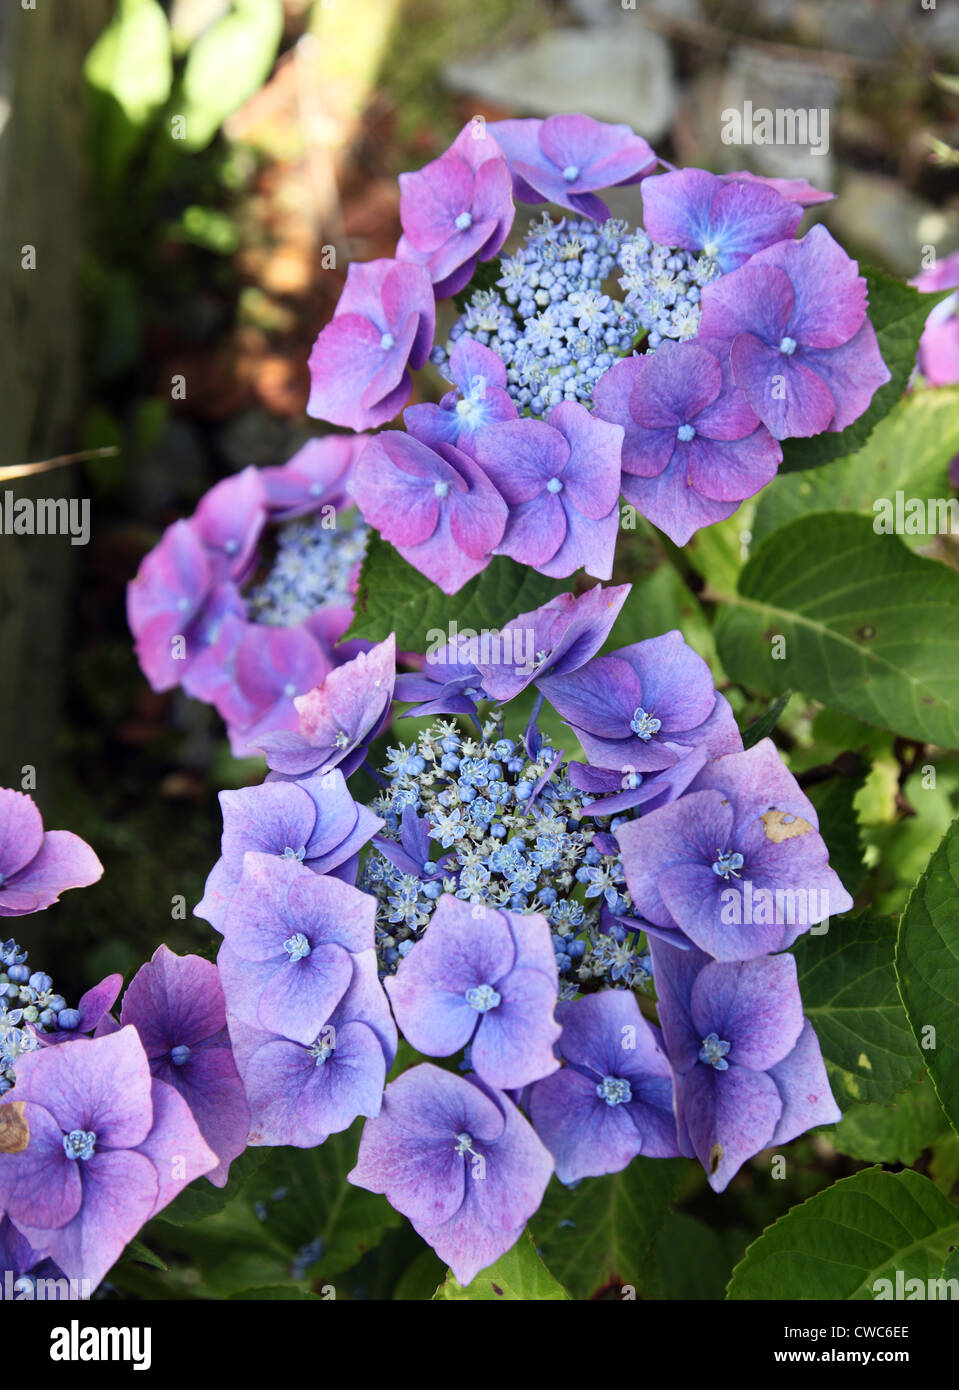 Blue lacecap hydrangea growing in alkaline soil and so turning pink - Stock Image